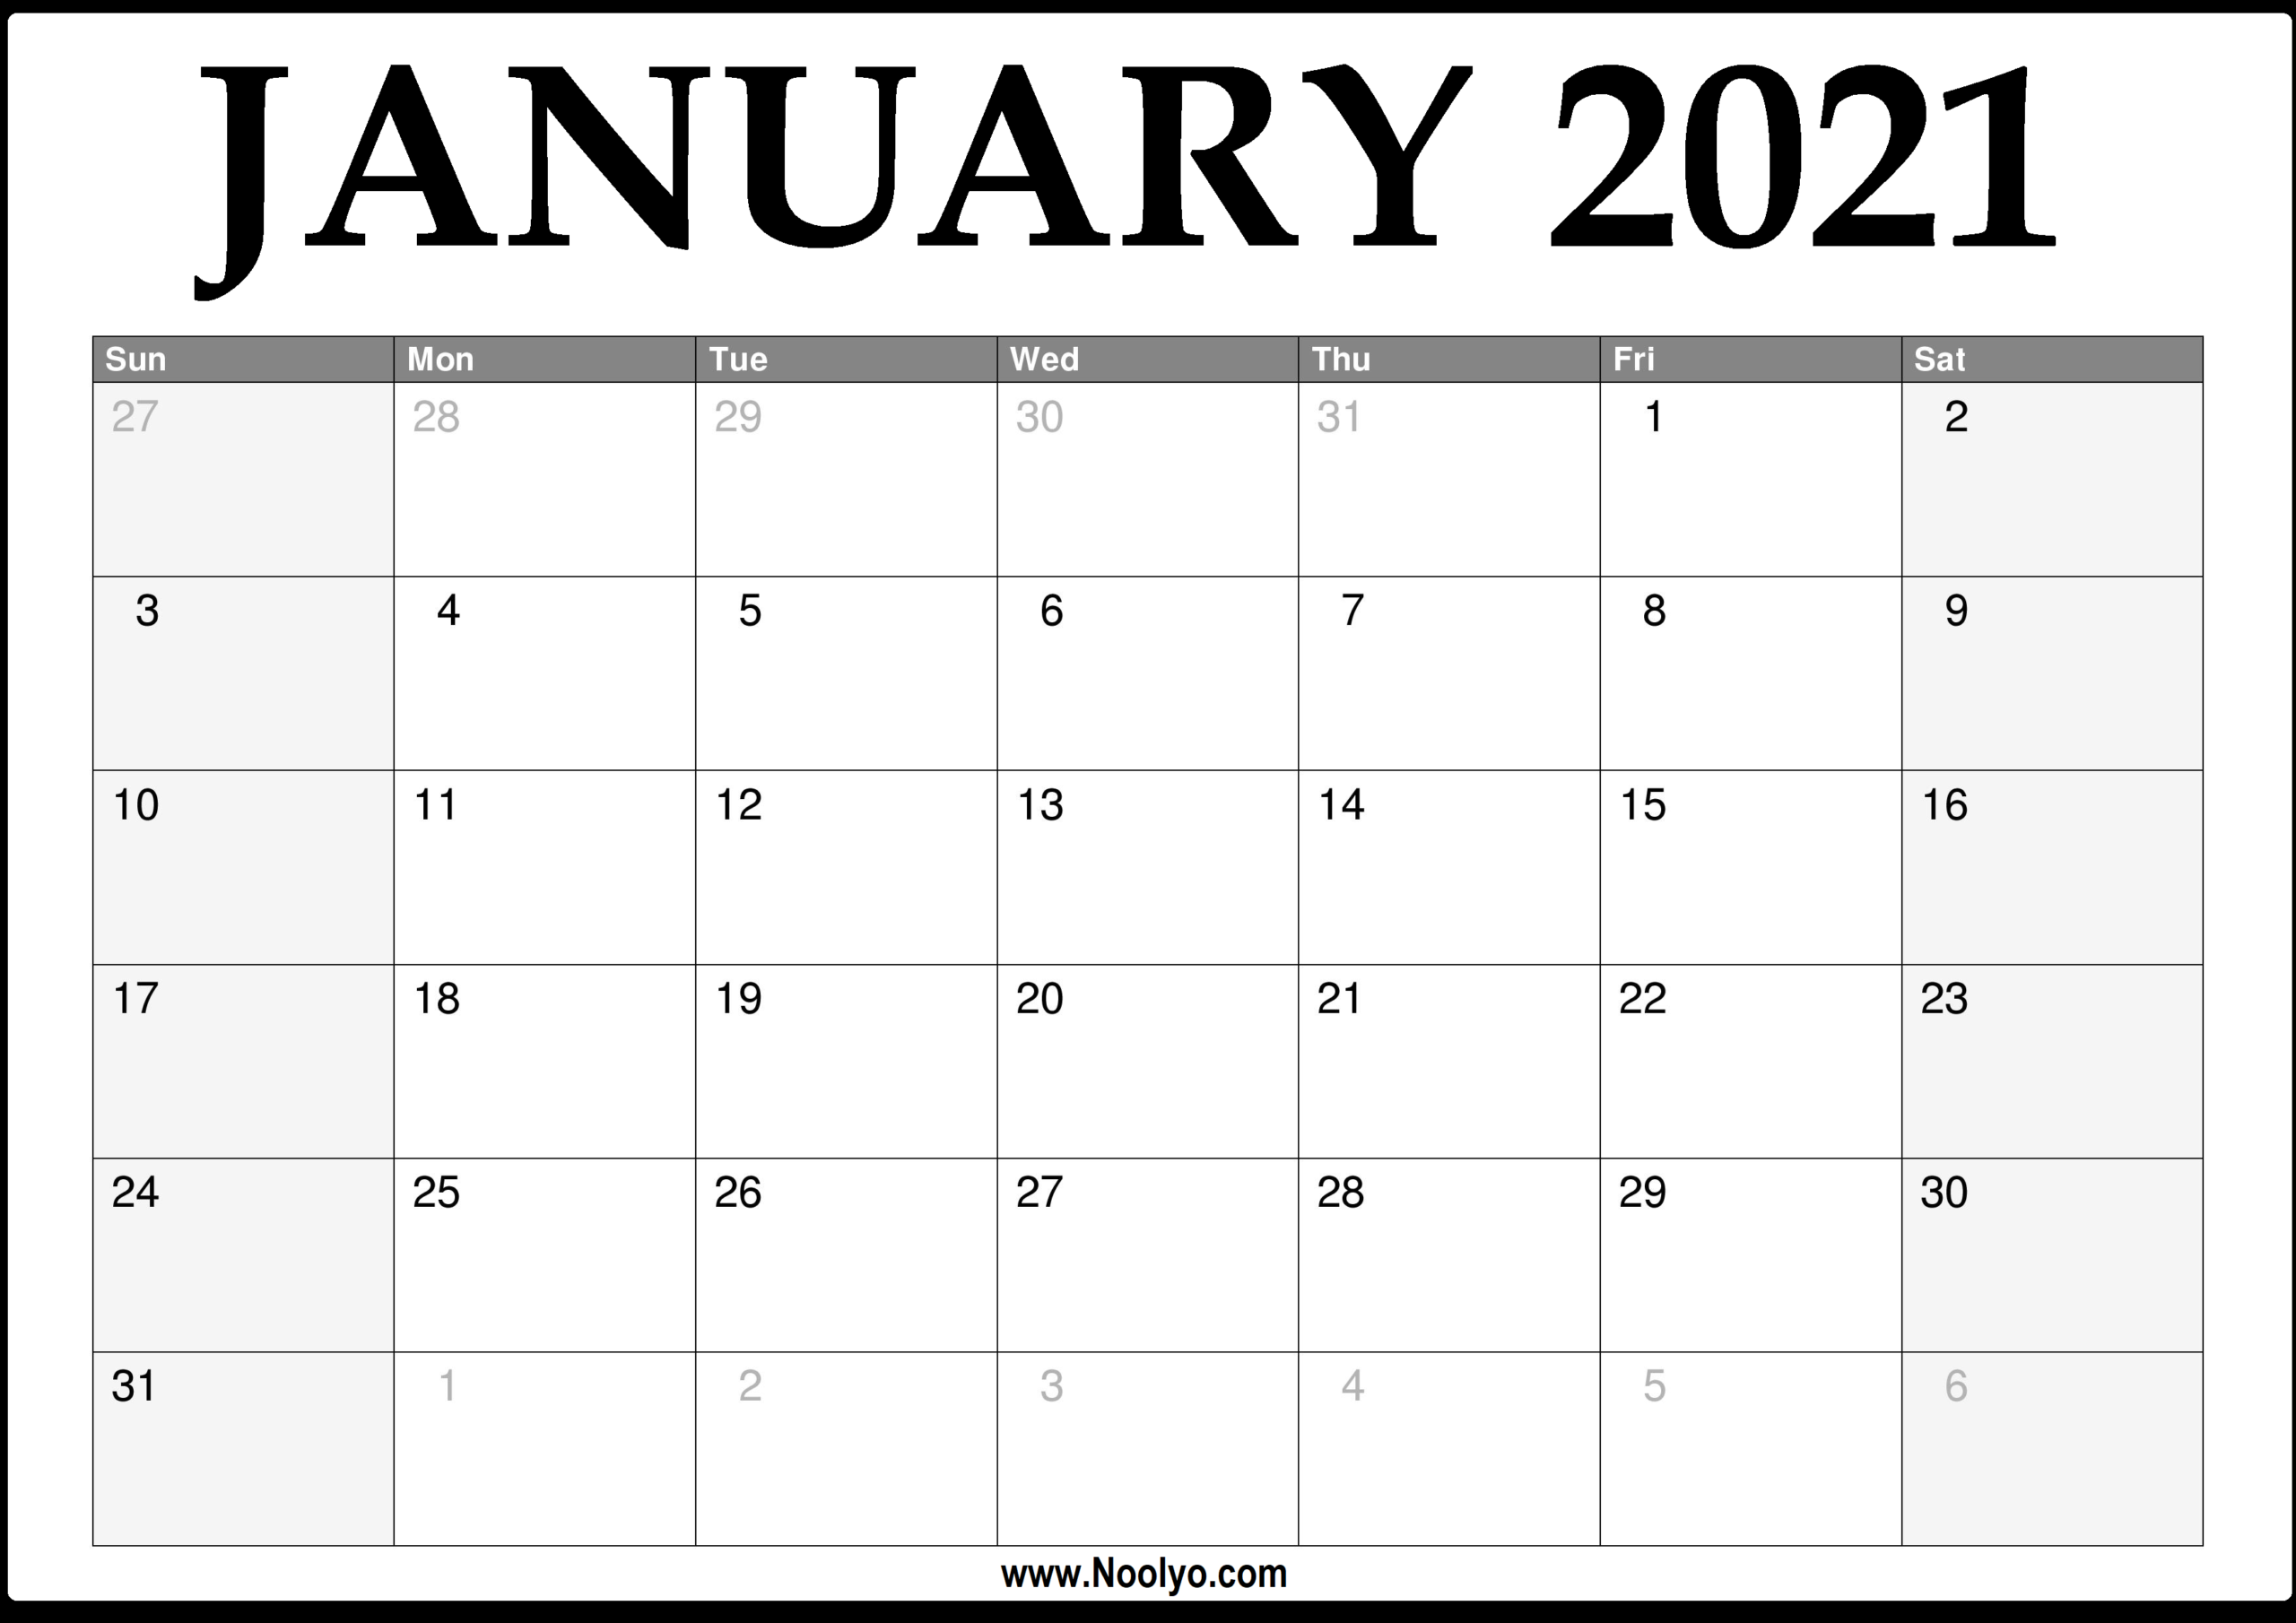 Monthly Calendar January 2021 | Printable March intended for Monthly Calendars Free Ruled 2021